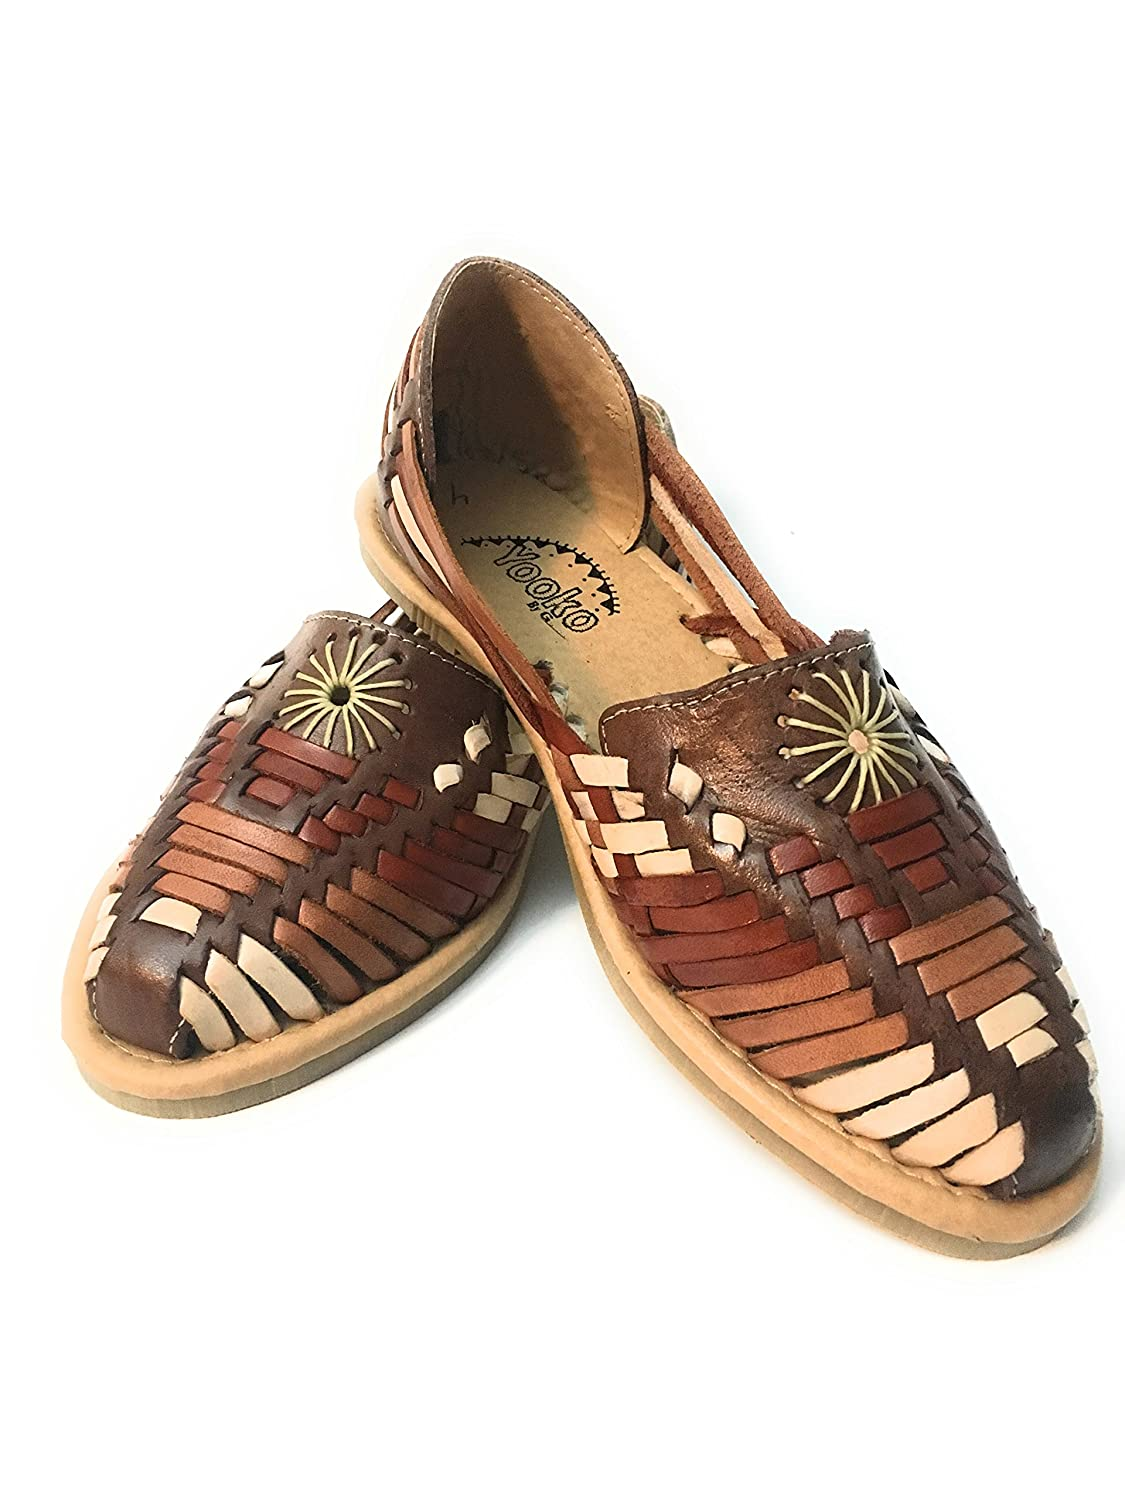 Women\u0027s Original Mexican Huarache Sandals. Closed Toe Leather Sandals